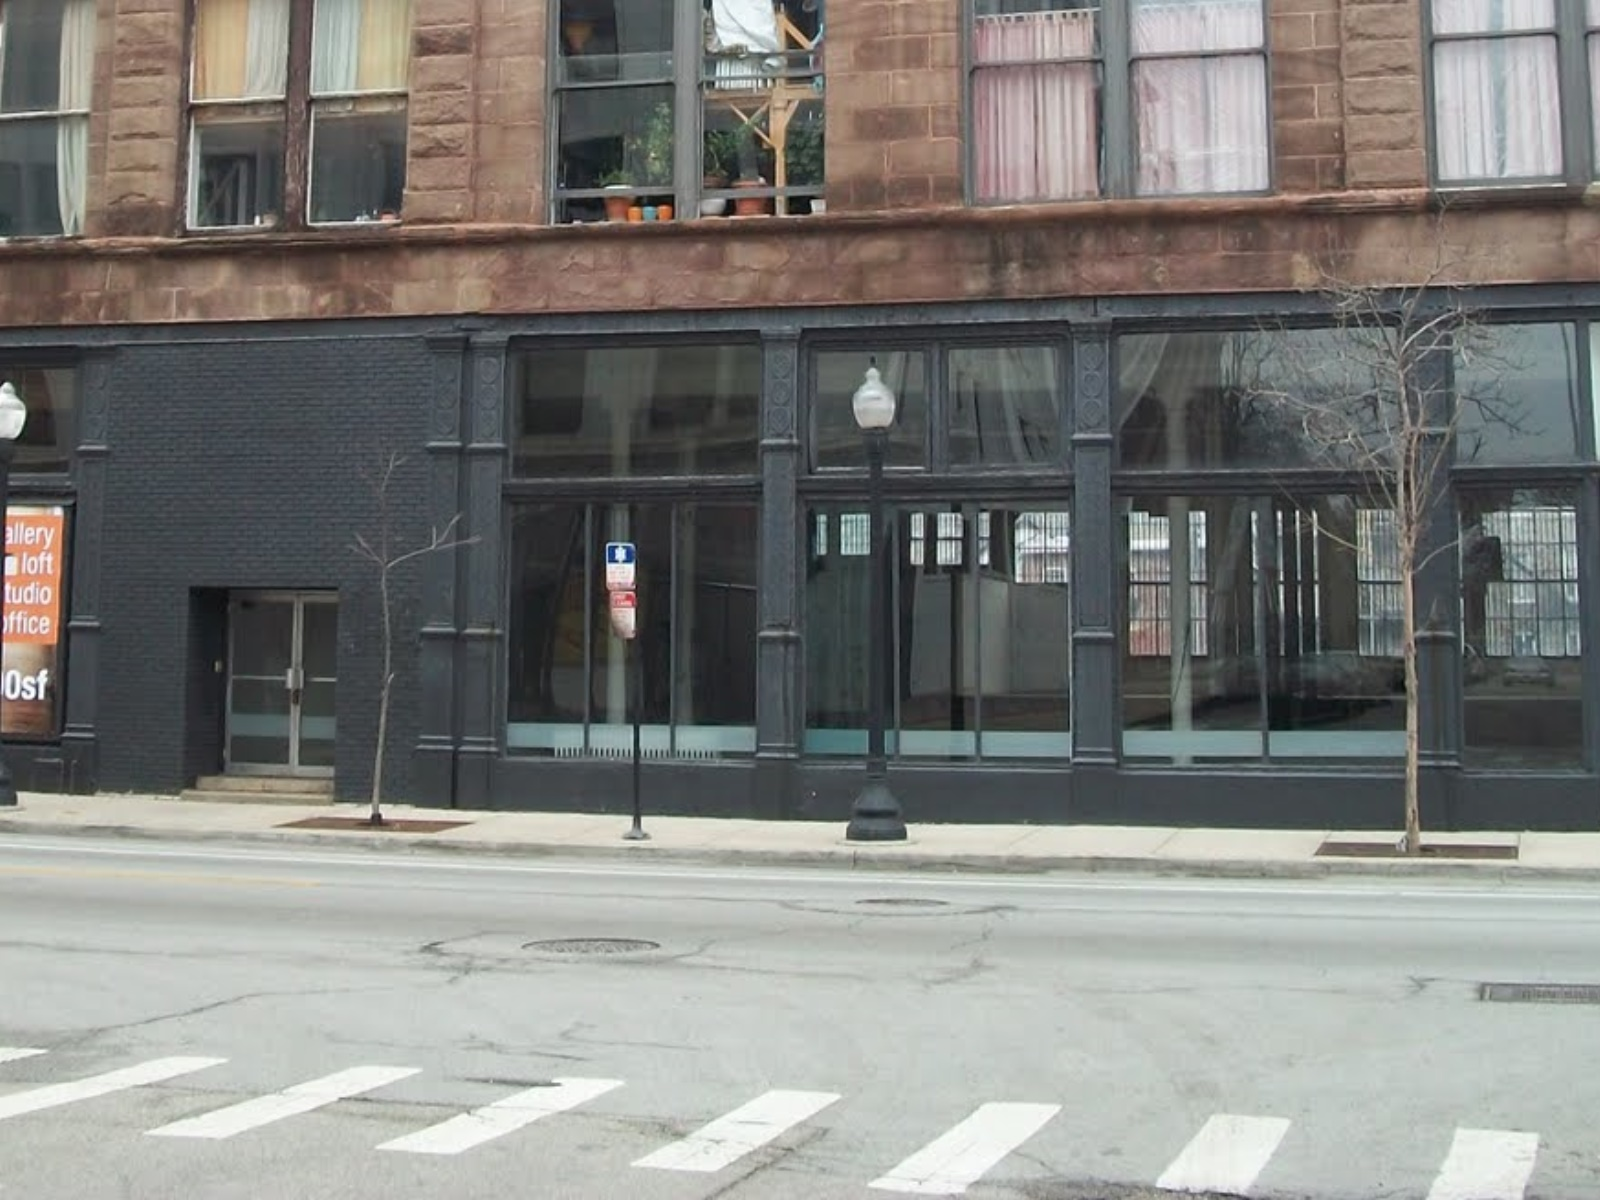 Filming locations of chicago and los angeles chain reaction for Avenue hotel chicago